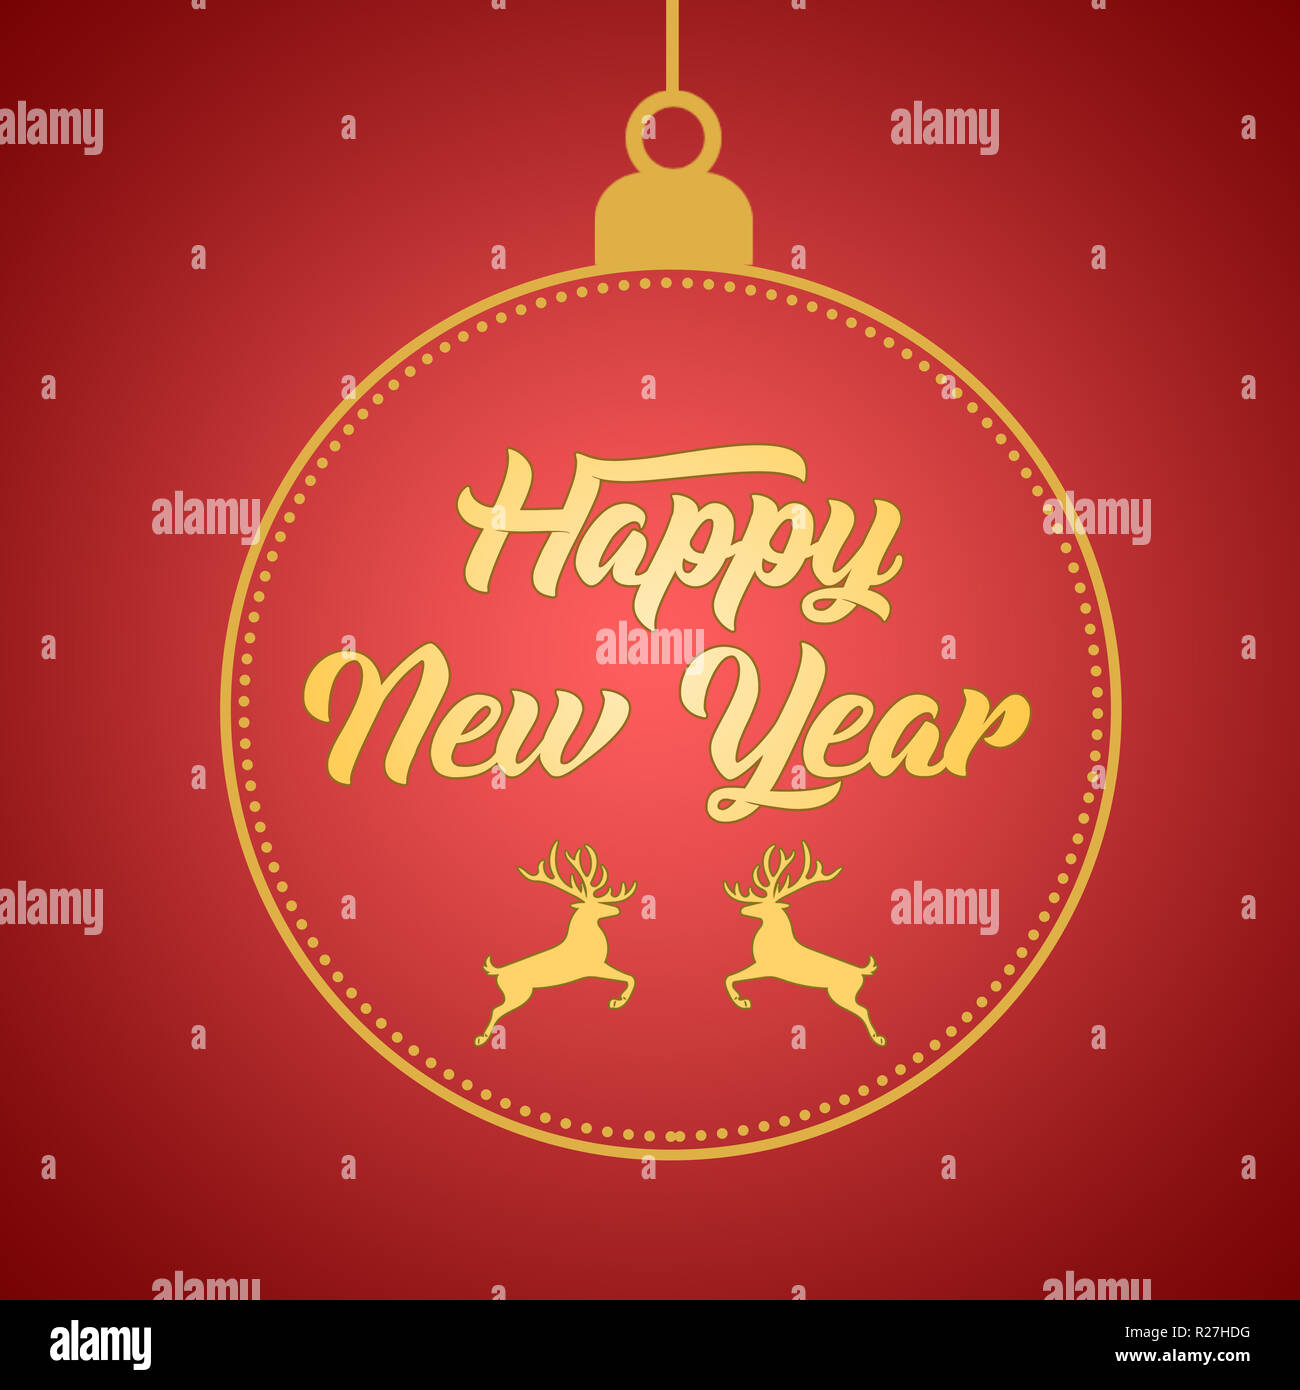 Happy New Year Greeting Card Design Template Layout On Red Gradient Background With Deer Text With Hand Drawing In The Ball Stock Photo Alamy